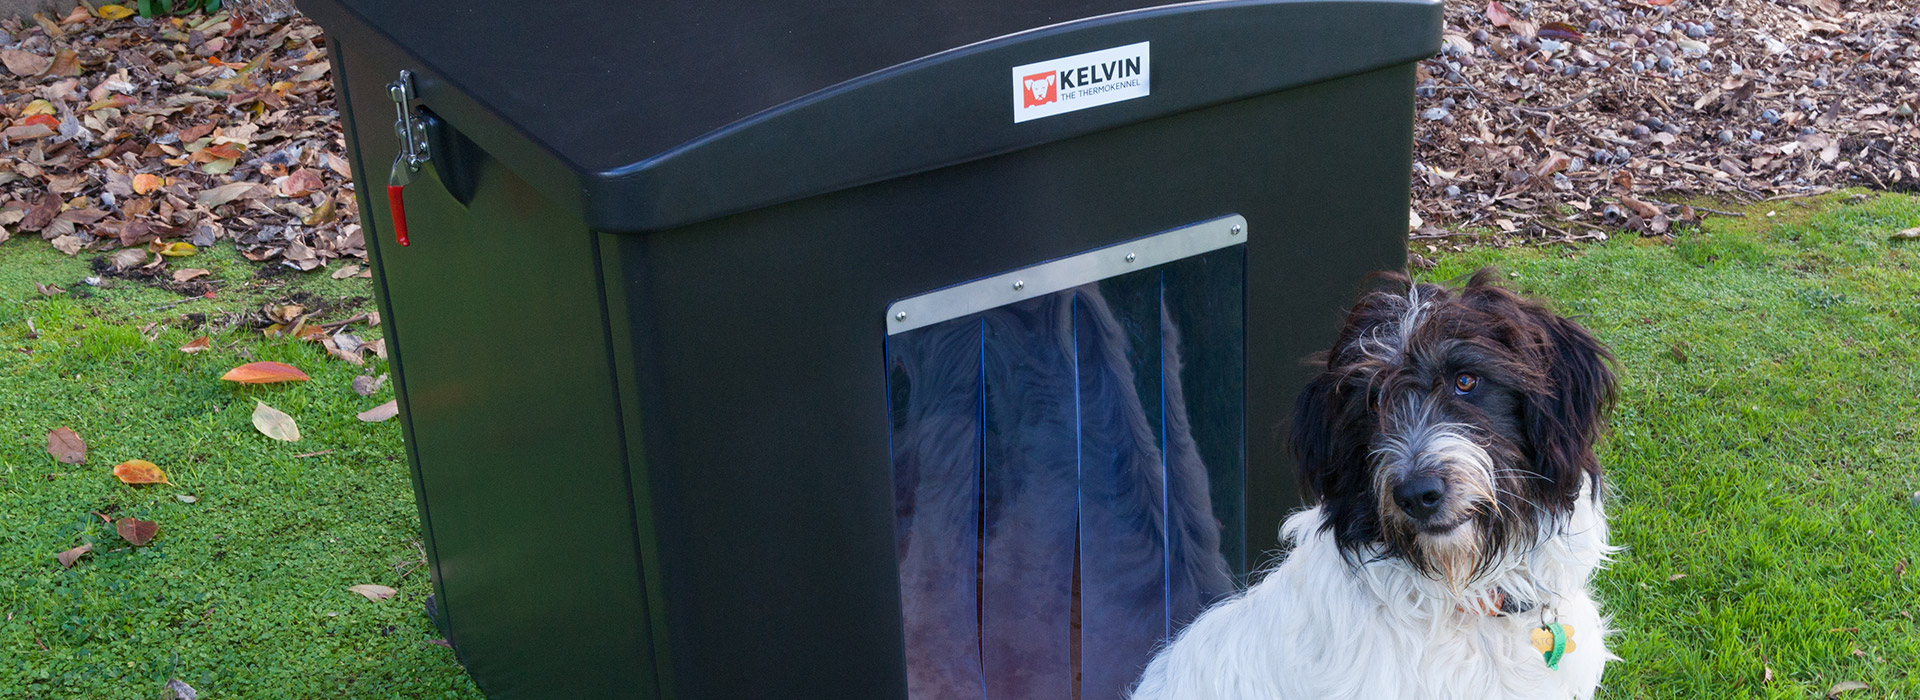 Kelvin the Thermokennel